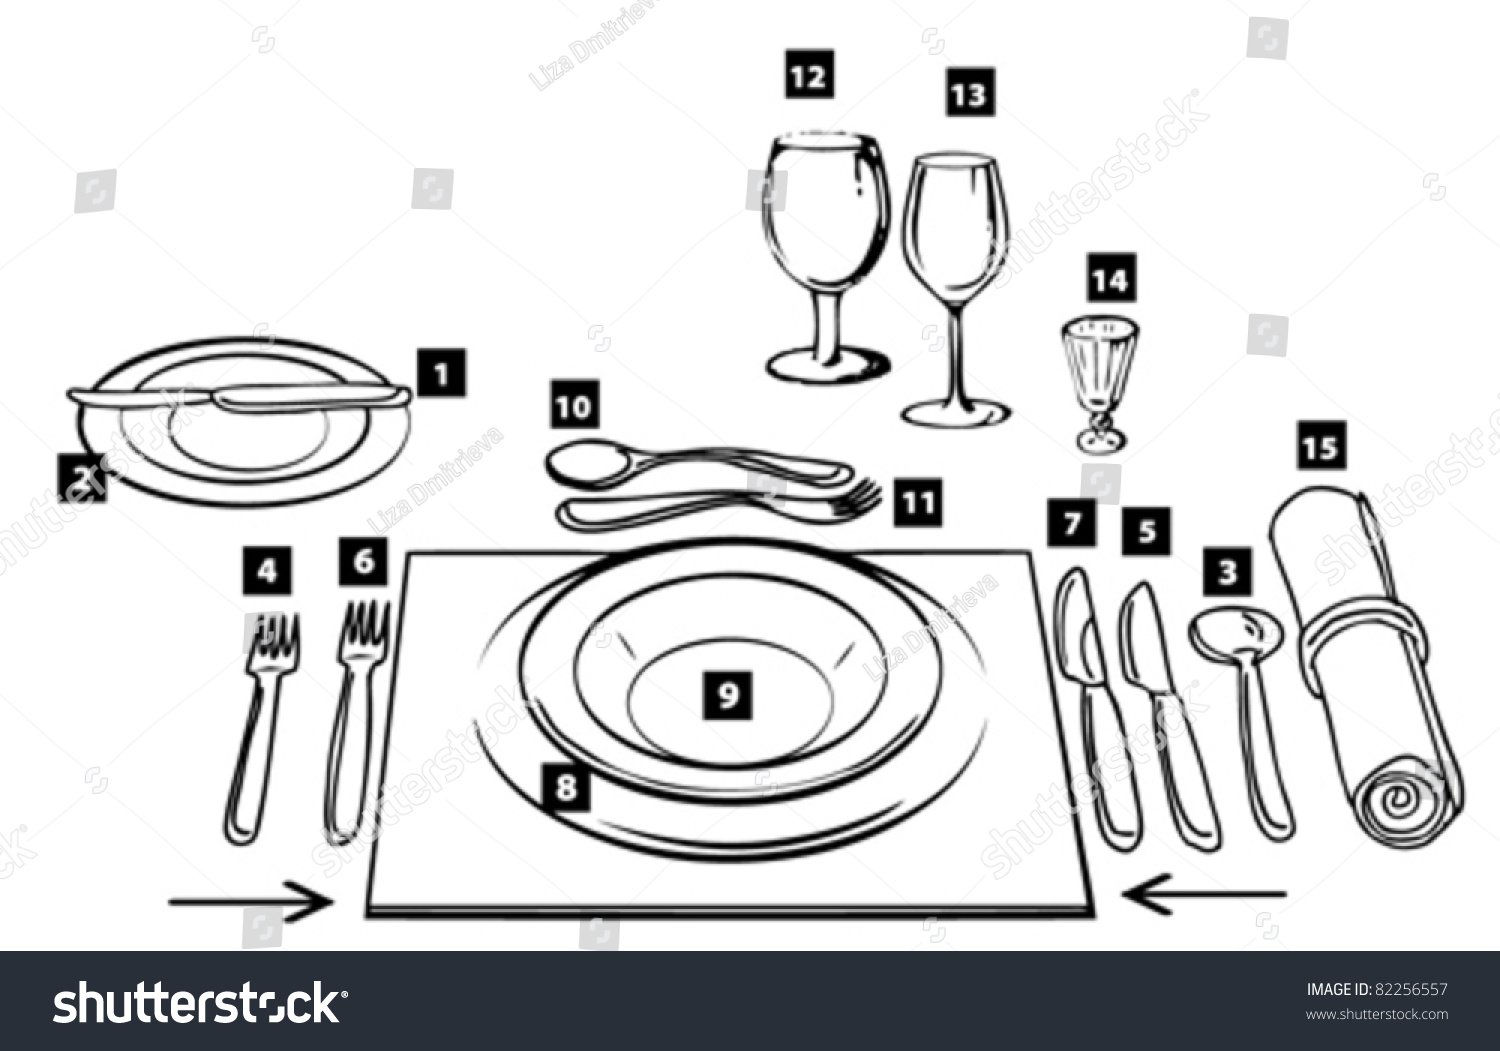 picture of proper table setting. place settingplace setting chart